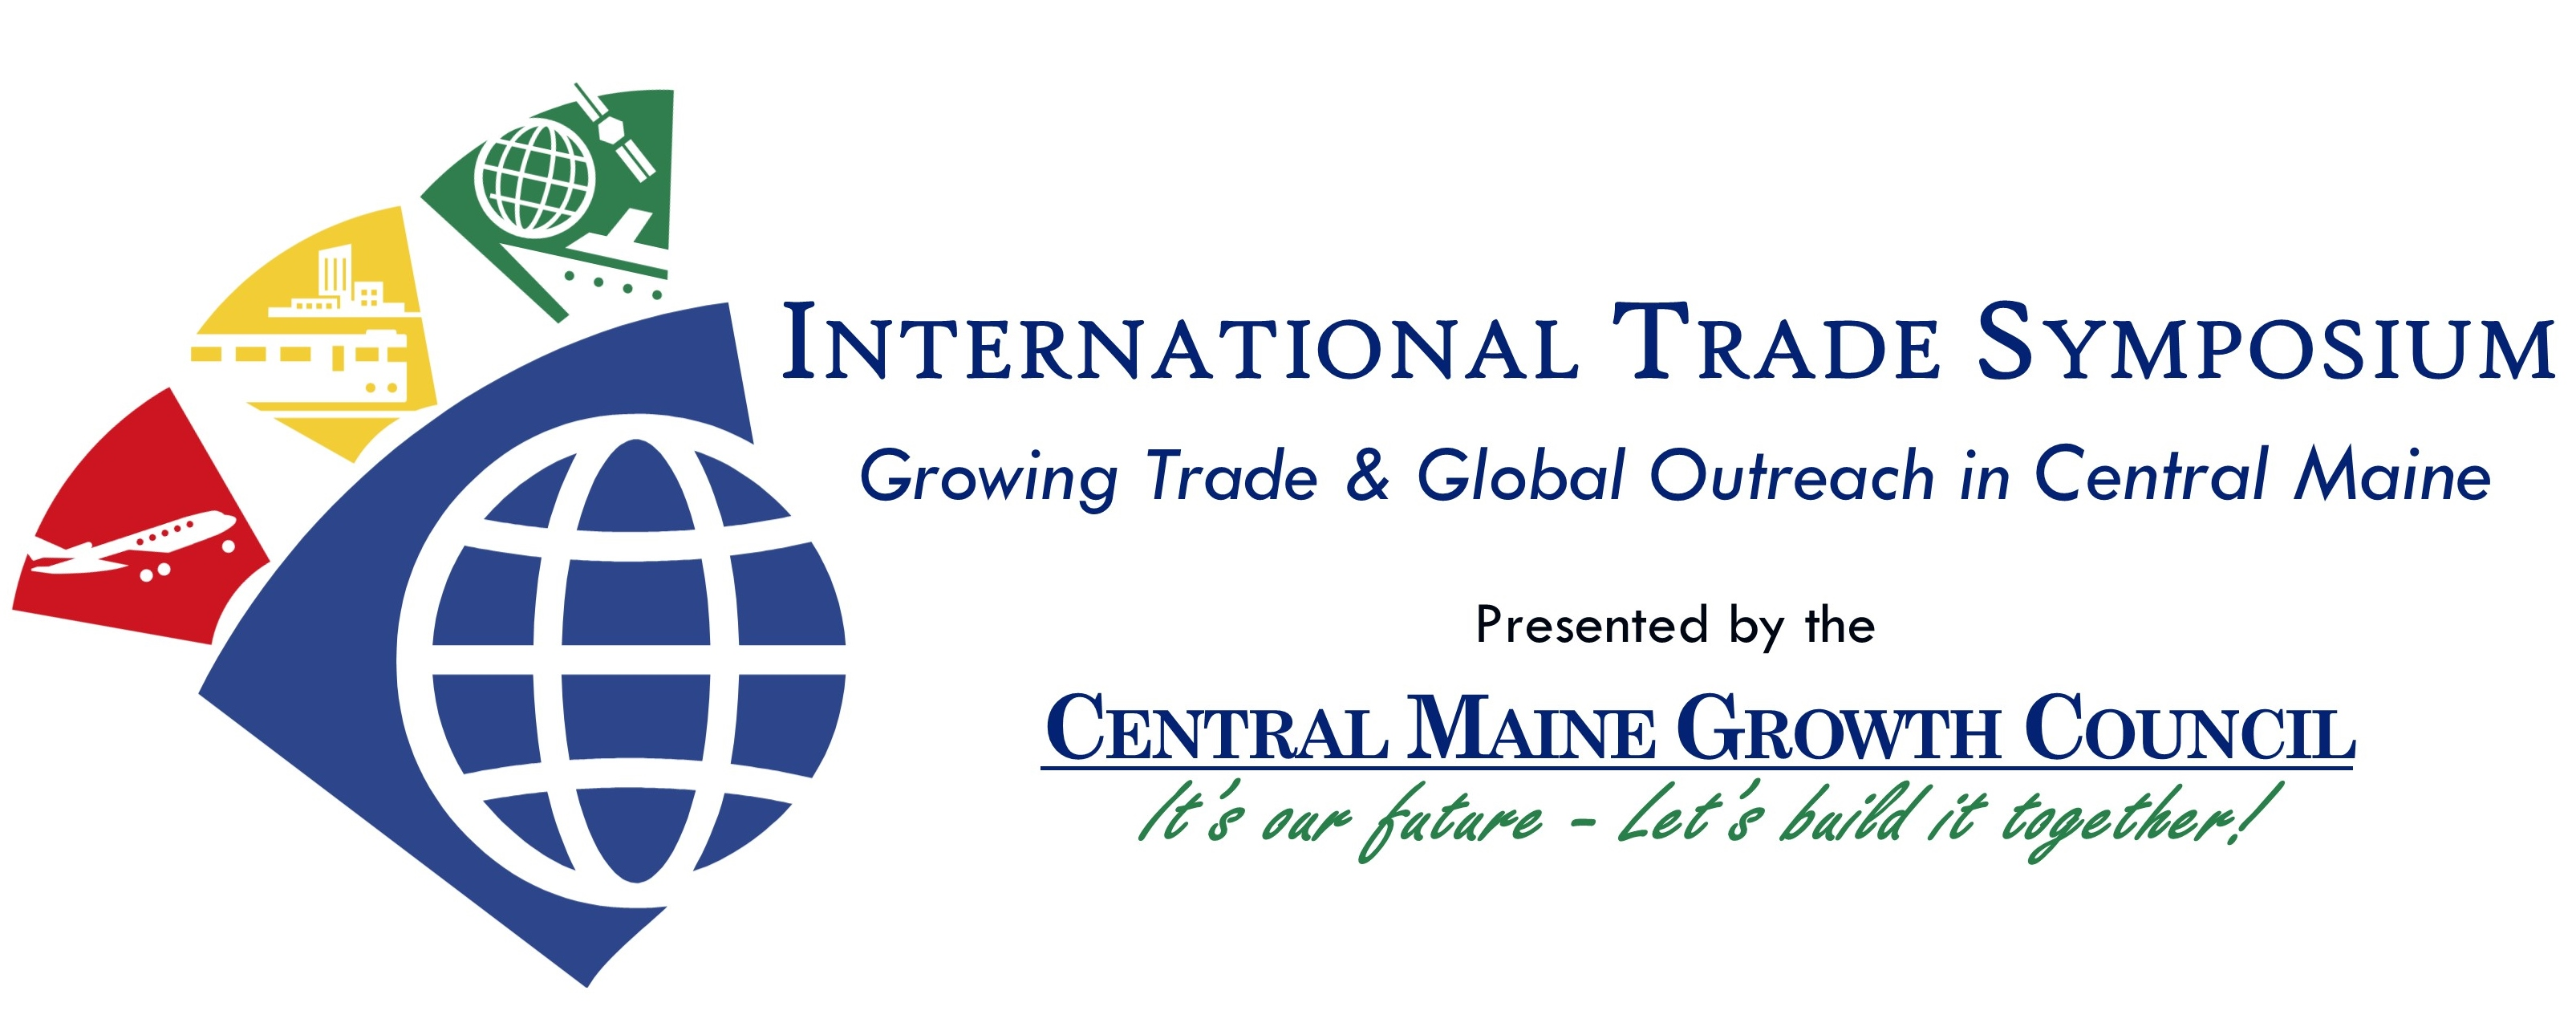 International Trade Symposium: Growing Trade & Global Outreach in Central Maine